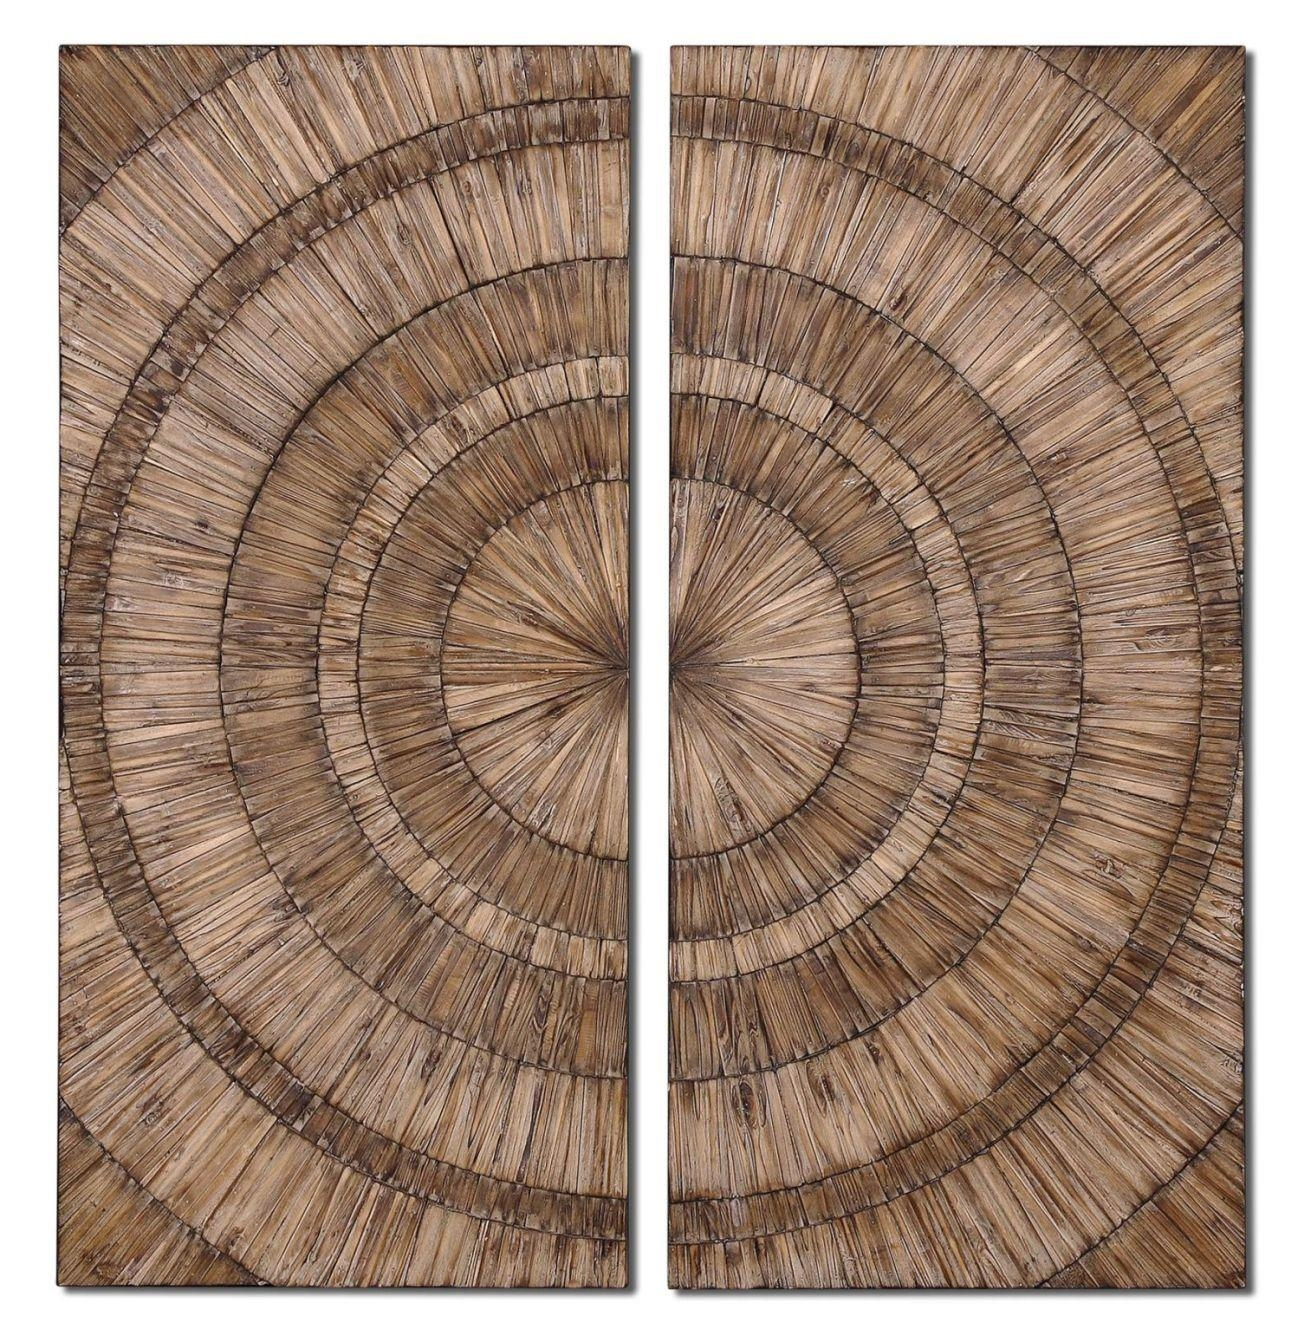 Uttermost Lanciano Wood Wall Art 07636 for Wood Wall Art Panels